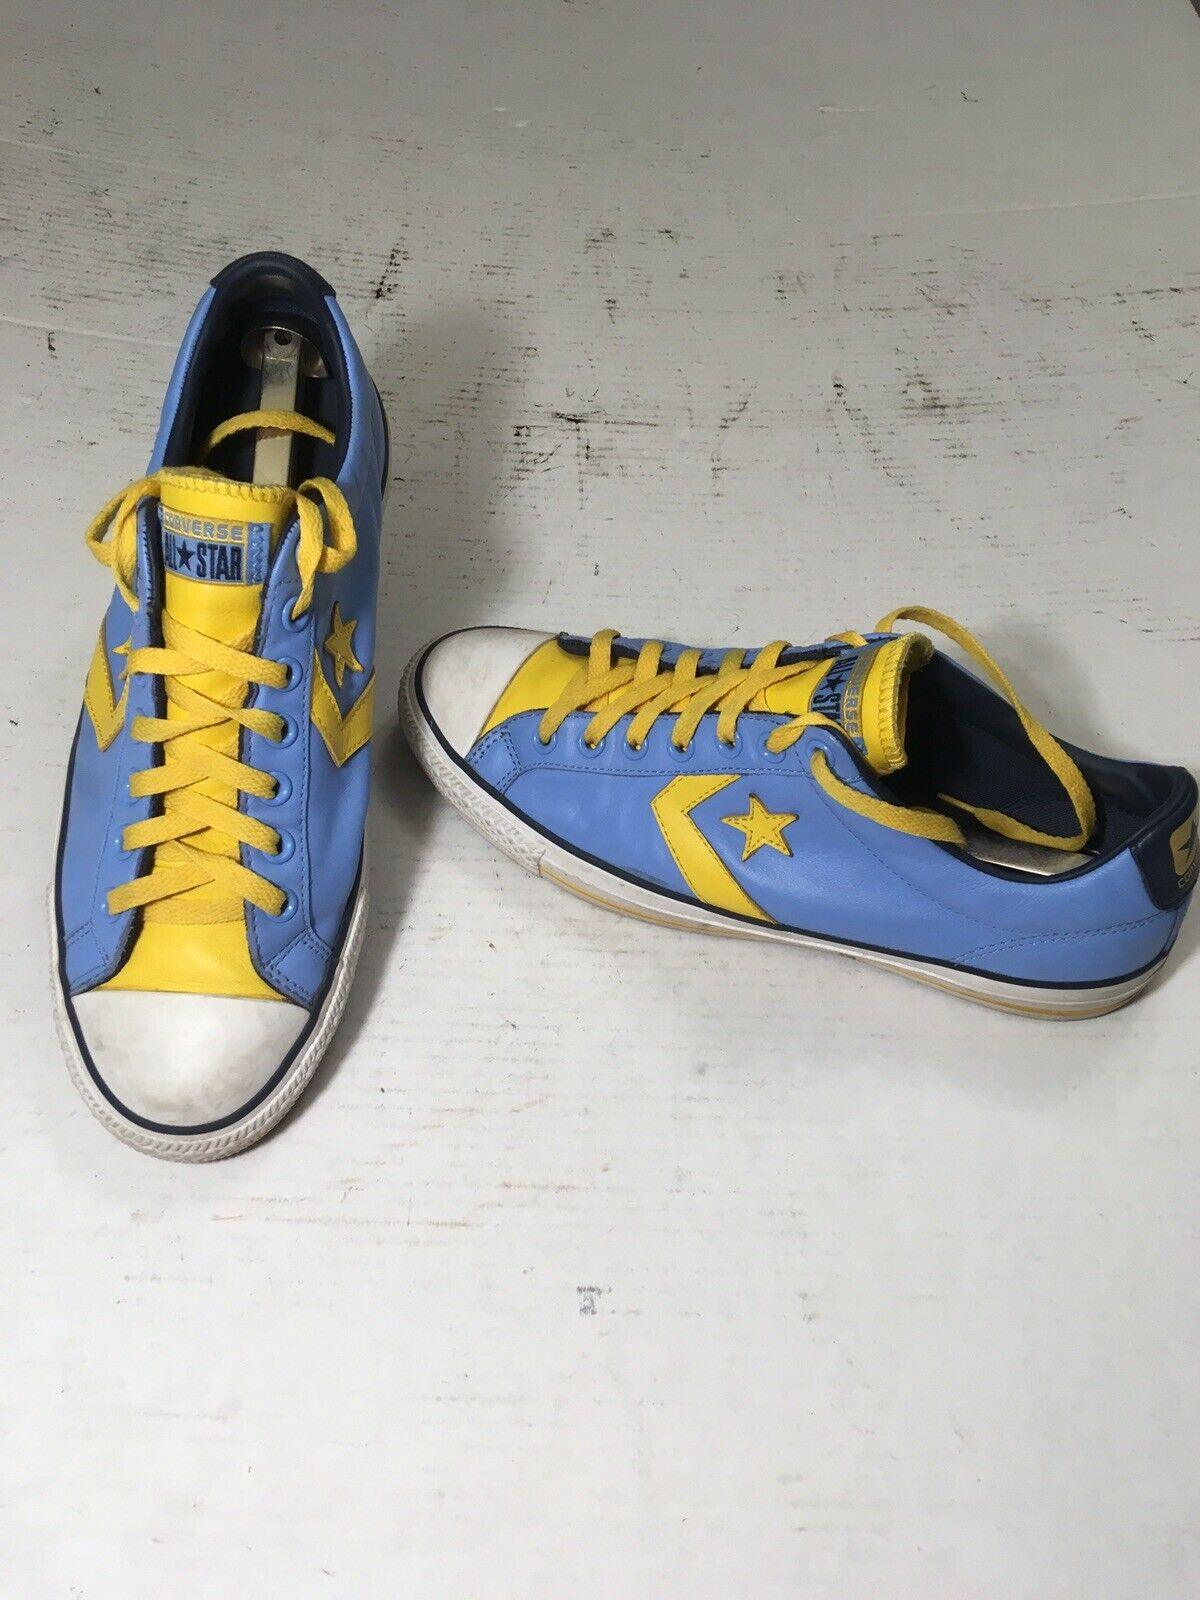 Converse Star Player EV 136771C Classic bluee Leather shoes Sz 10 Mens, 12 Womens